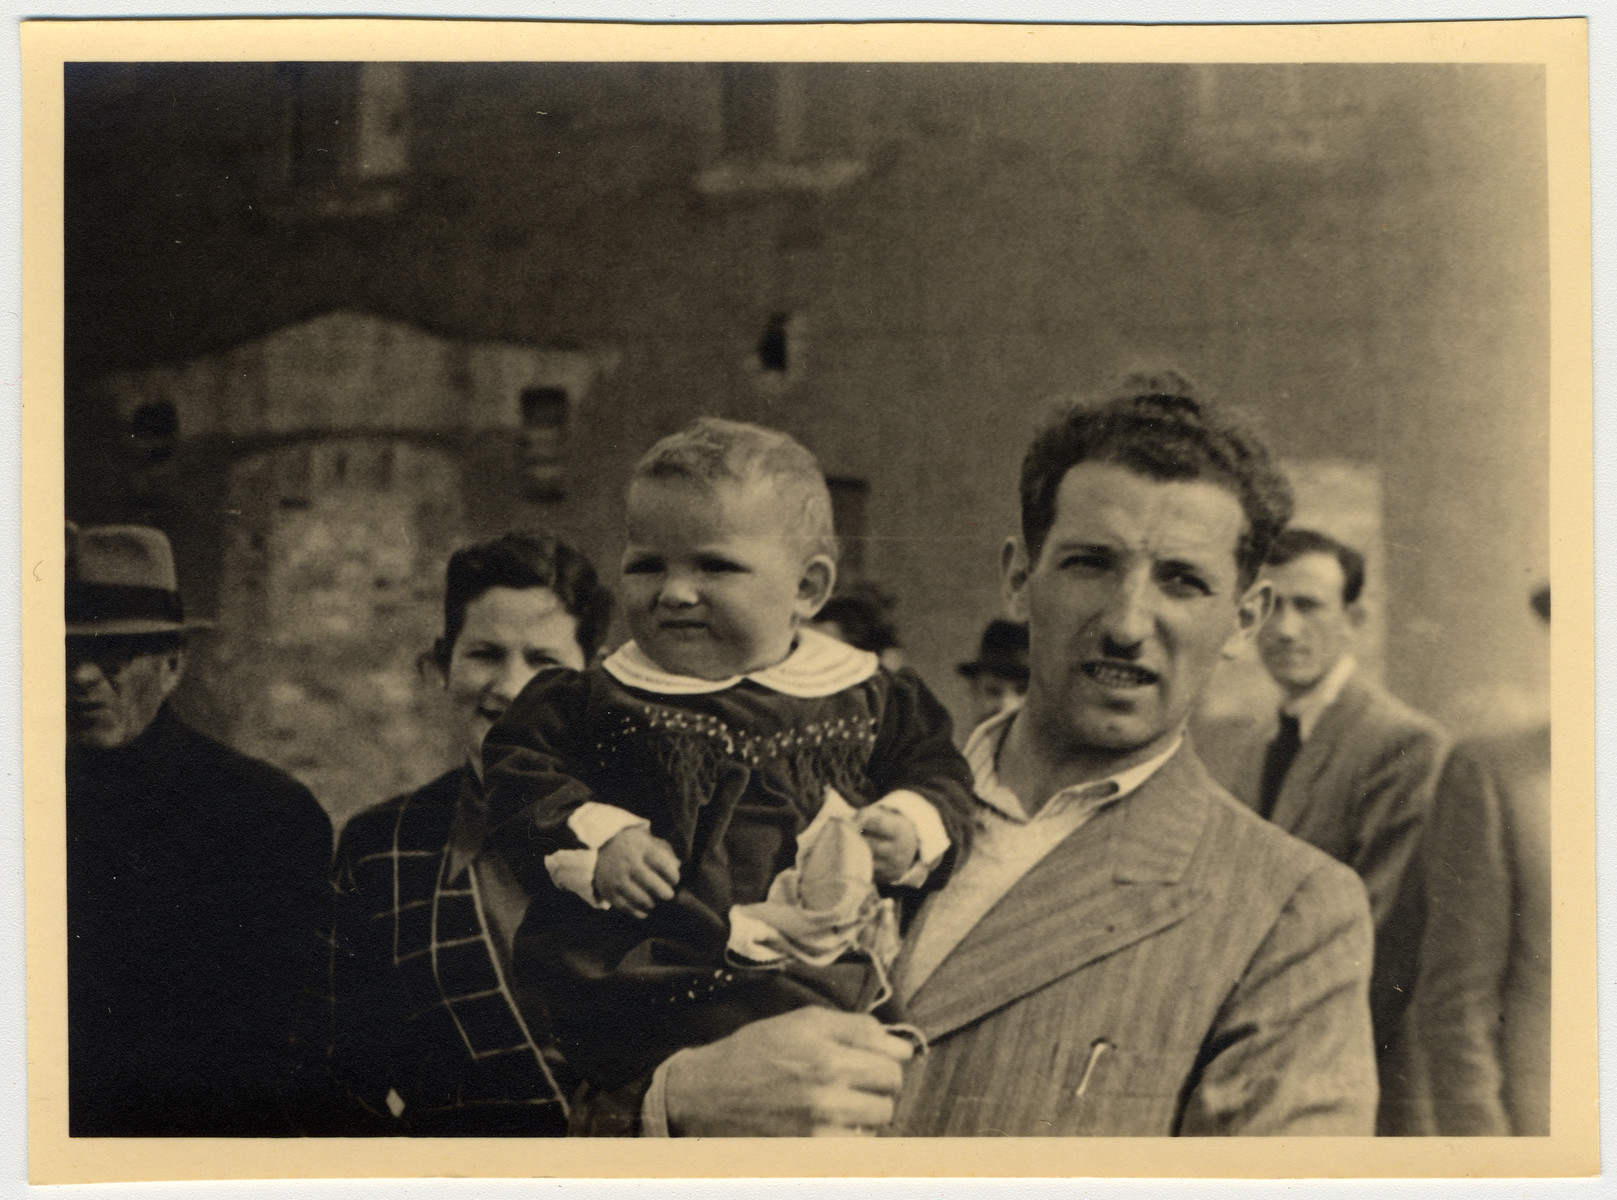 A Jewish displaced person holds his young child in [what probably is the Landsberg displaced persons' camp].